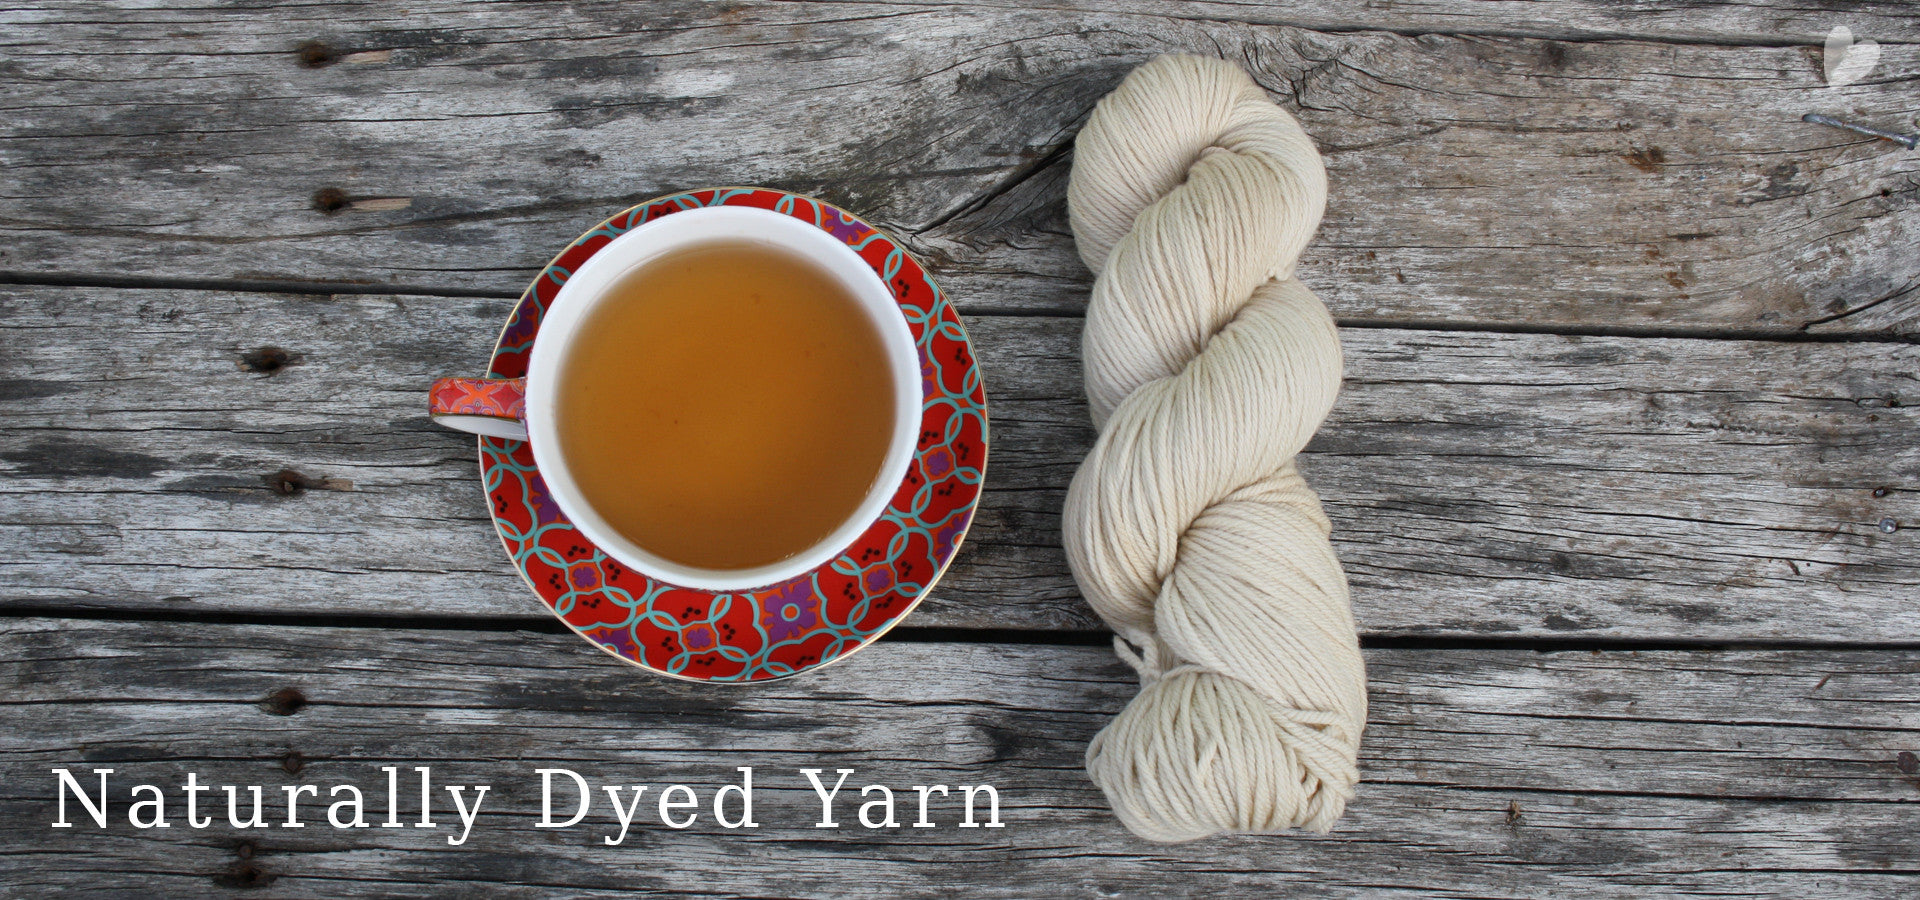 Augustbird Naturally Dyed Yarn